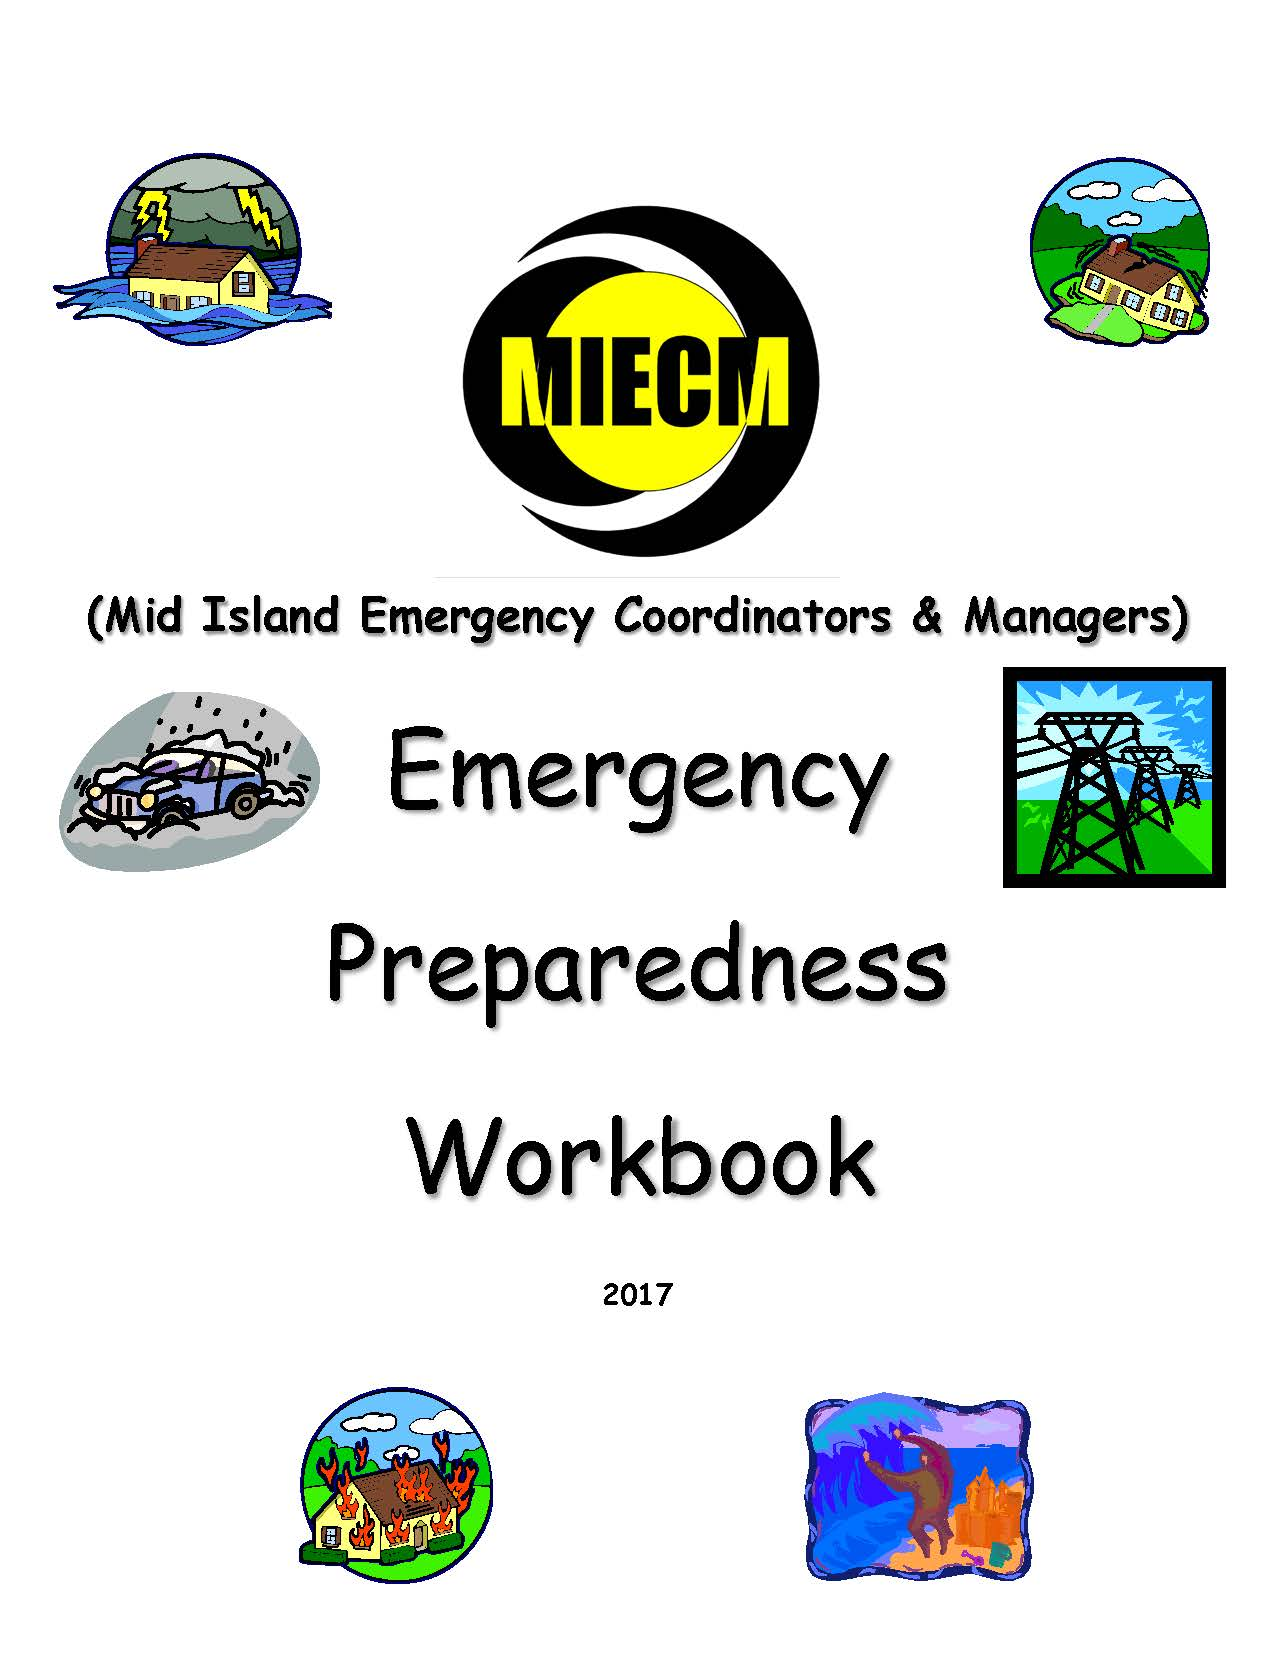 Emergency Preparedness Workbook Cover Image